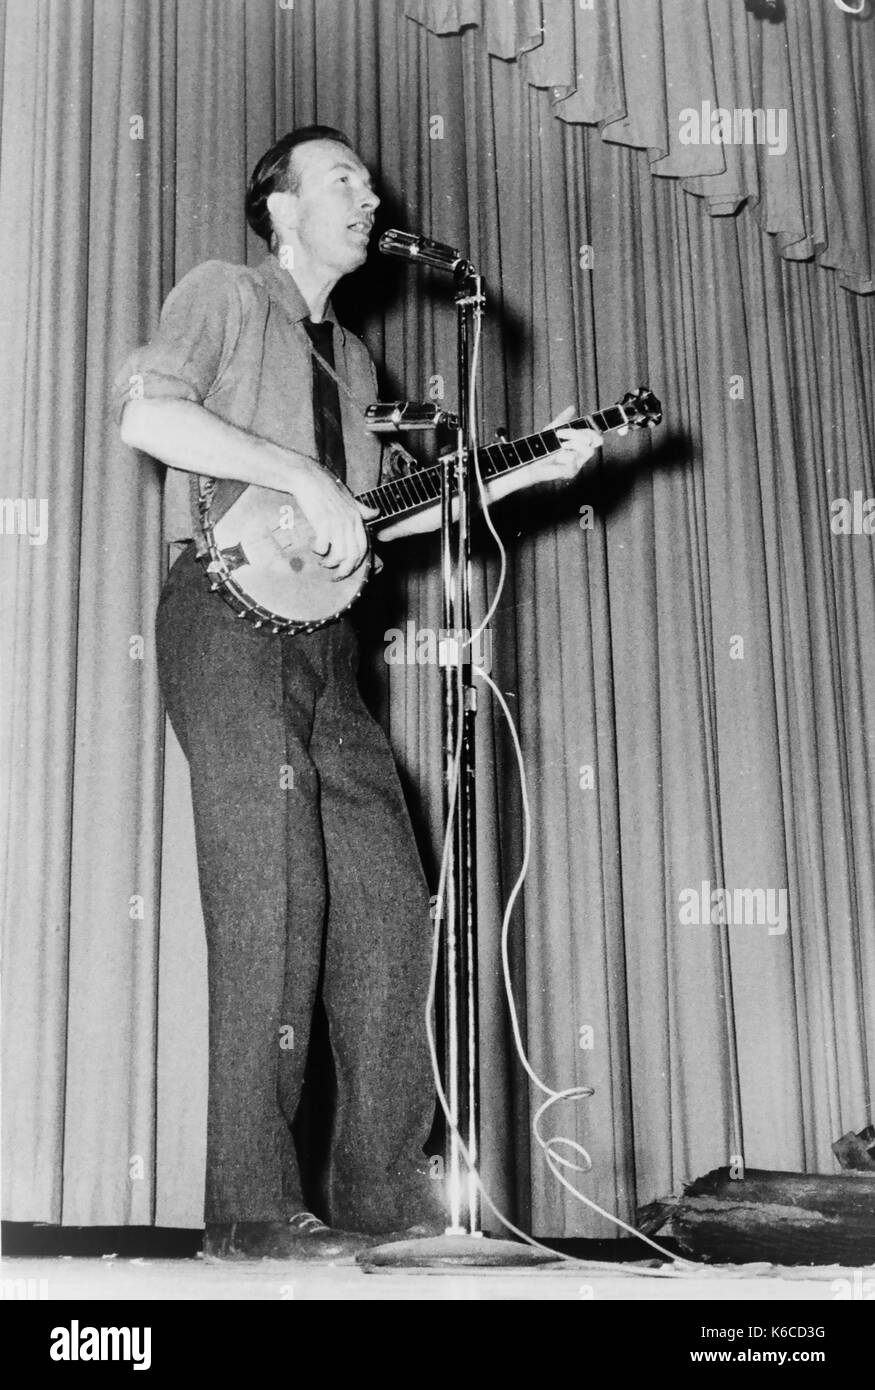 PETE SEEGER (1919-2014) American folk musician about 1944 Stock Photo